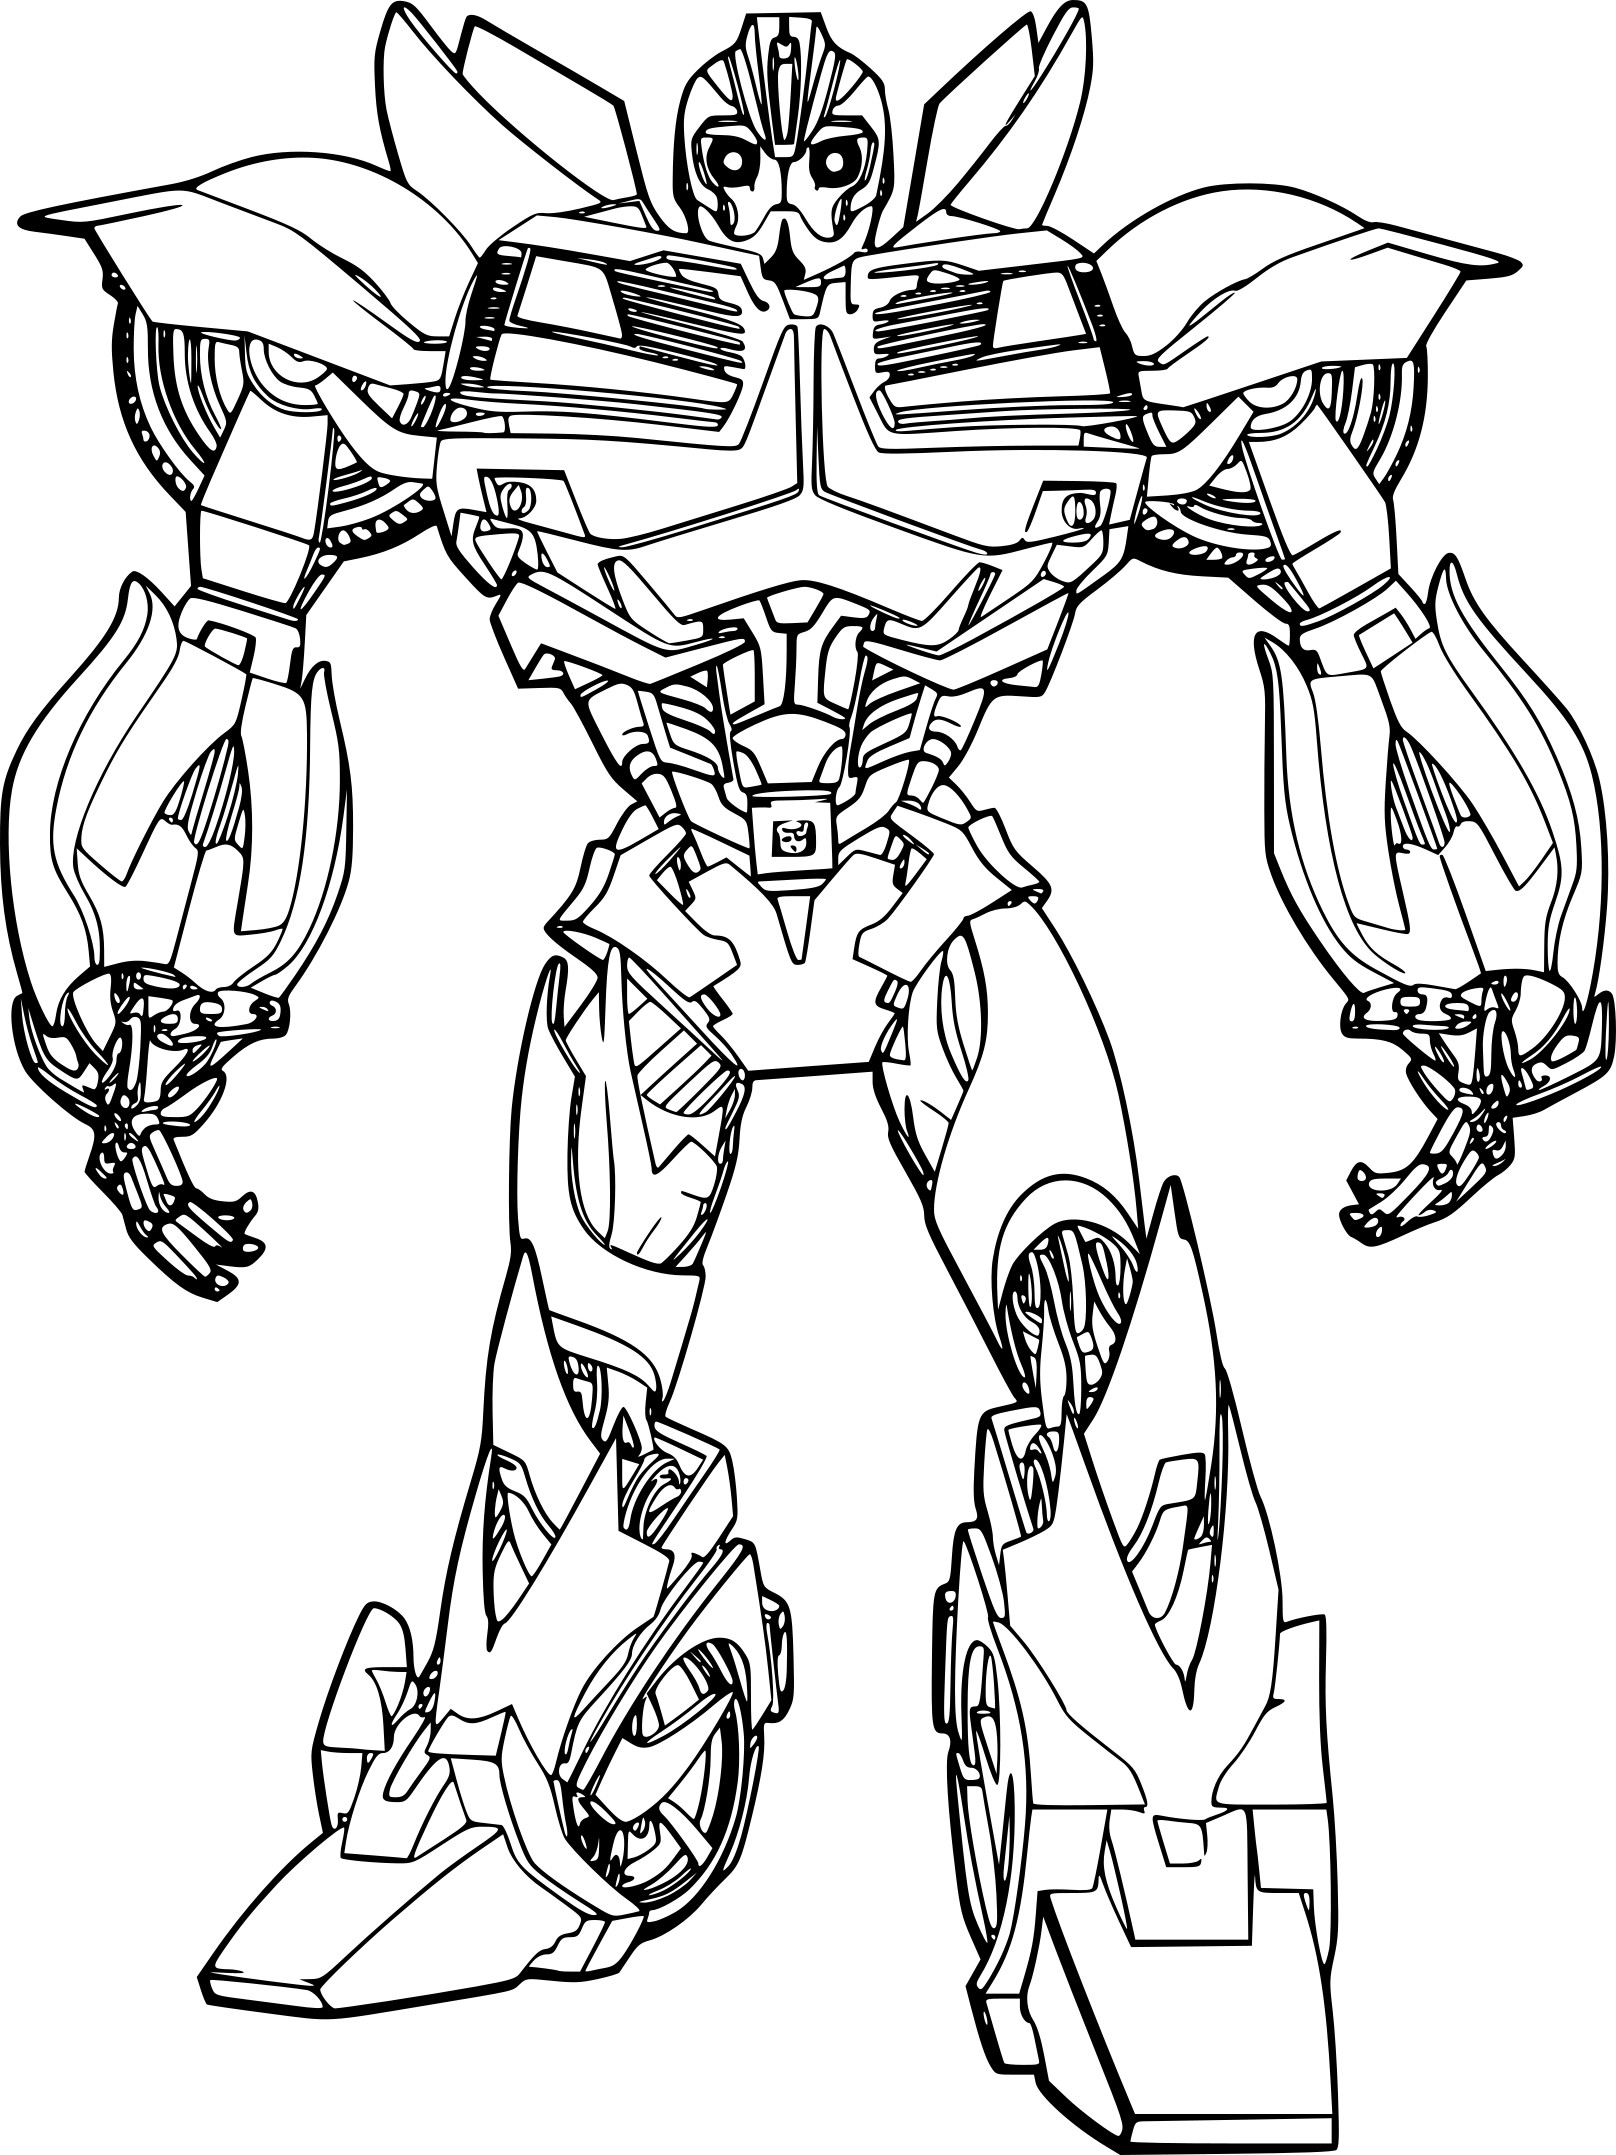 Coloriage transformers bumblebee imprimer sur coloriages - Coloriage transformers ...